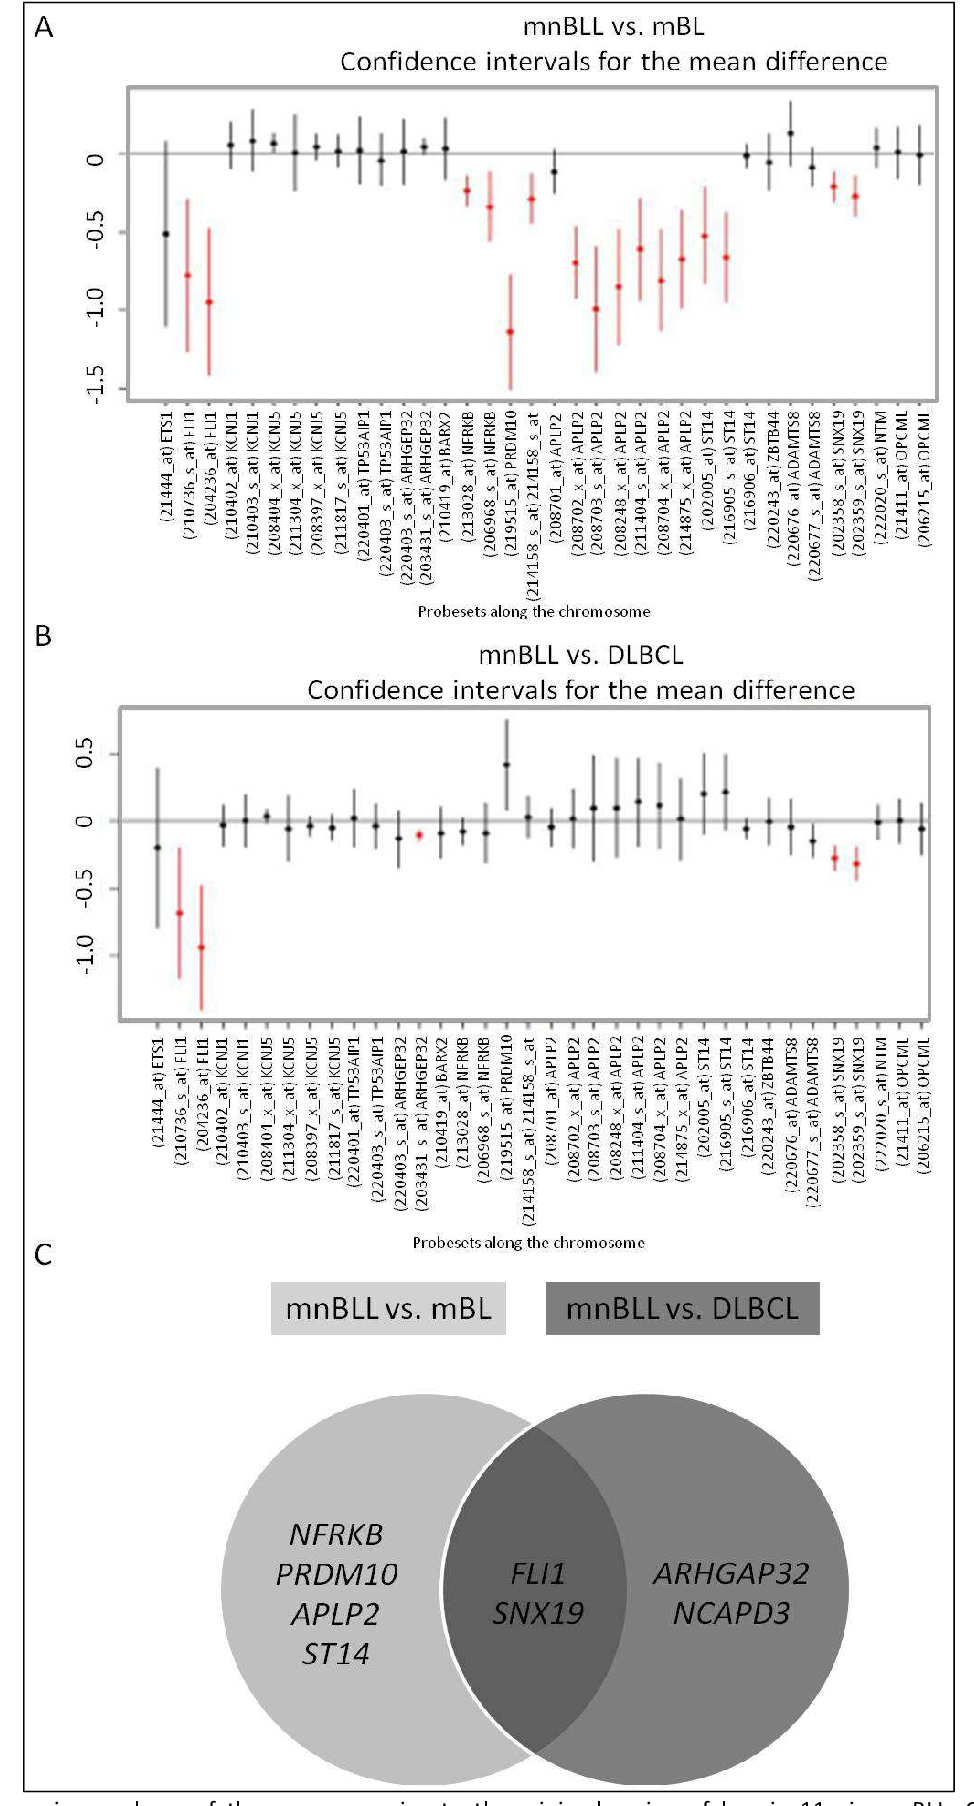 Figure 28: Expression analyses of the genes mapping to the minimal region of loss in 11q in mnBLL. Comparison of transcript expression in mnBLL vs. mBL (A) and vs. DLBCL (B). The mean expression is indicated by a dot and the vertical lines depict 95 % confidence intervals for the fold changes between the two compared groups. Significant differentially expressed genes (adj. p-value <0.1) are highlighted in red. Comparison of the differentially expressed genes of the minimal region of loss, revealed six genes to be significantly lower expressed in mnBLL than in mBL and four genes lower than in DLBCL. Two genes were lower expressed in mnBLL as compared to both contrasting groups. Modified from [166].